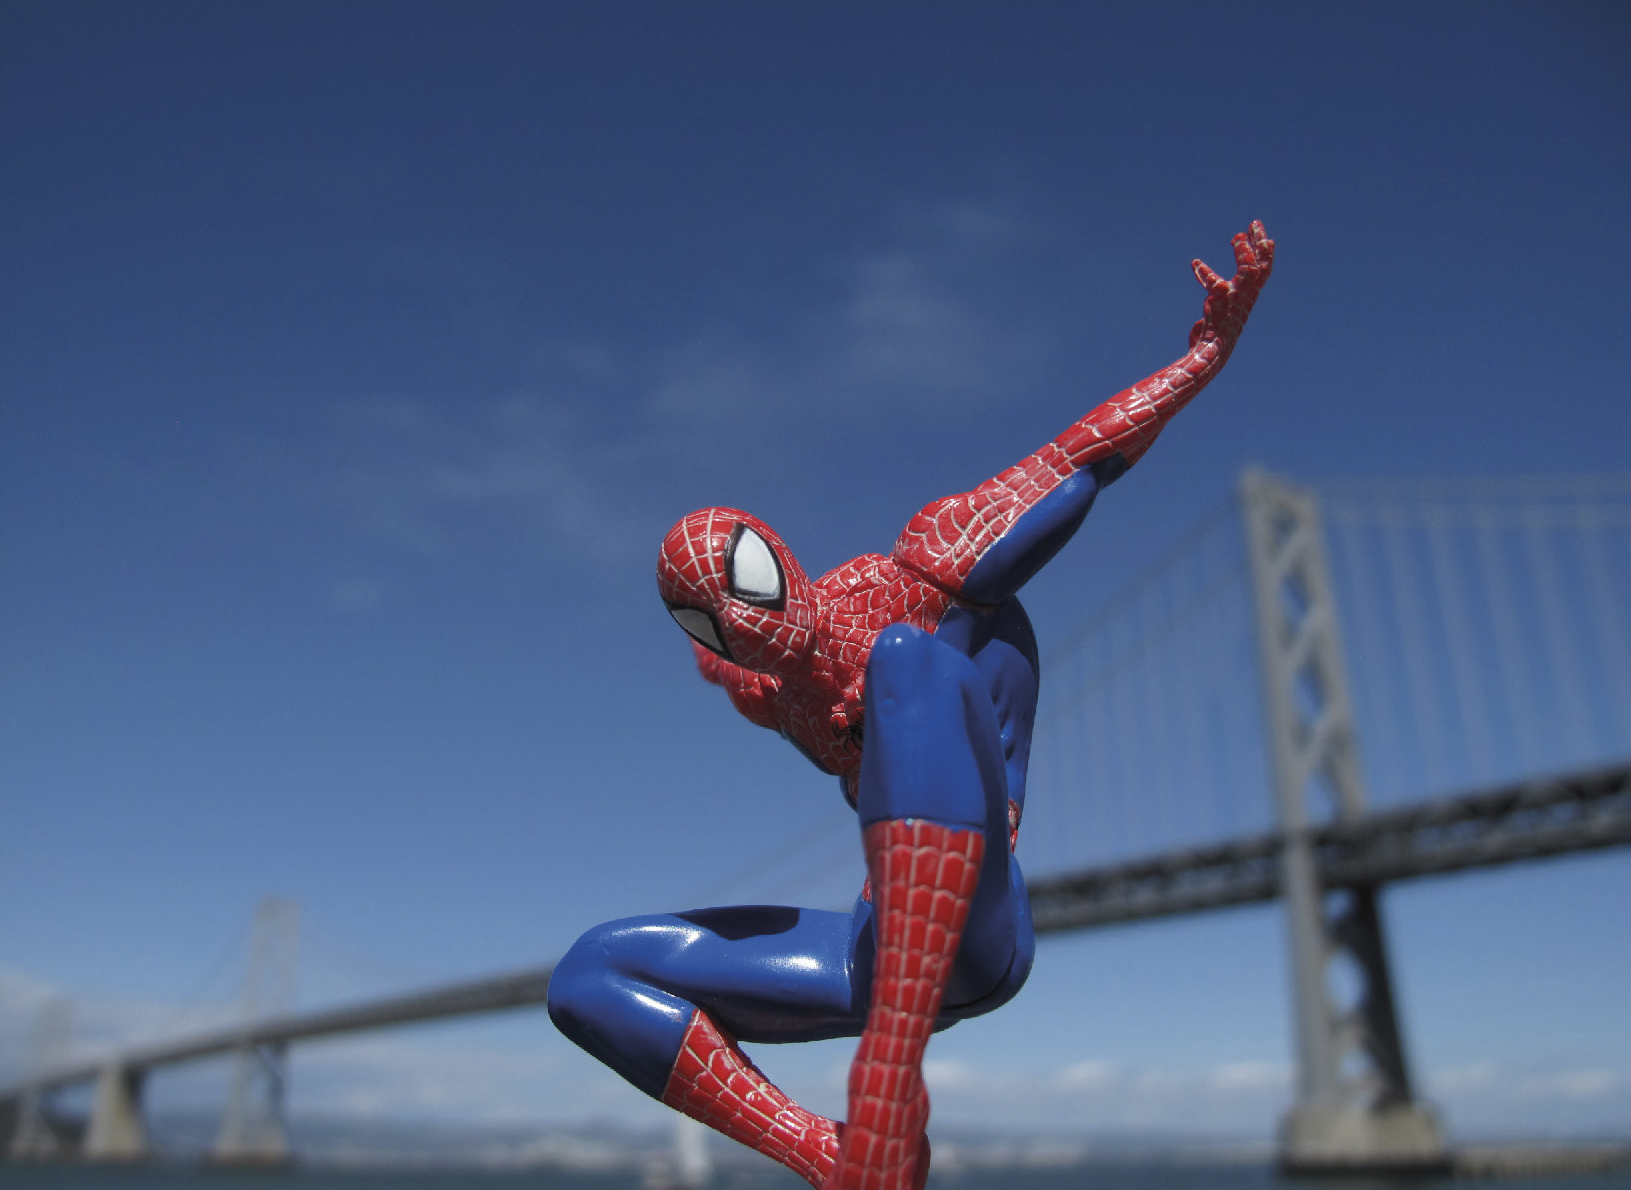 Lagarde Laurent (XXe-XXIe ) SpiderMan at the Bay Bridge, 2014 - Photography N°3/5 - [...]